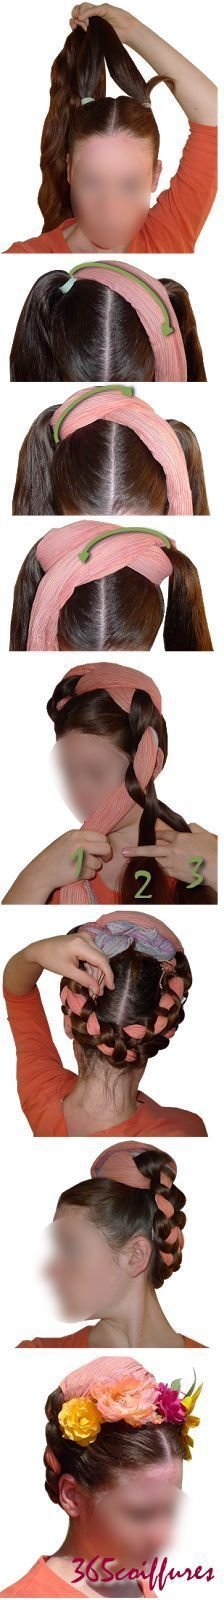 The Best Best 25 Mexican Hairstyles Ideas On Pinterest Mexican Pictures